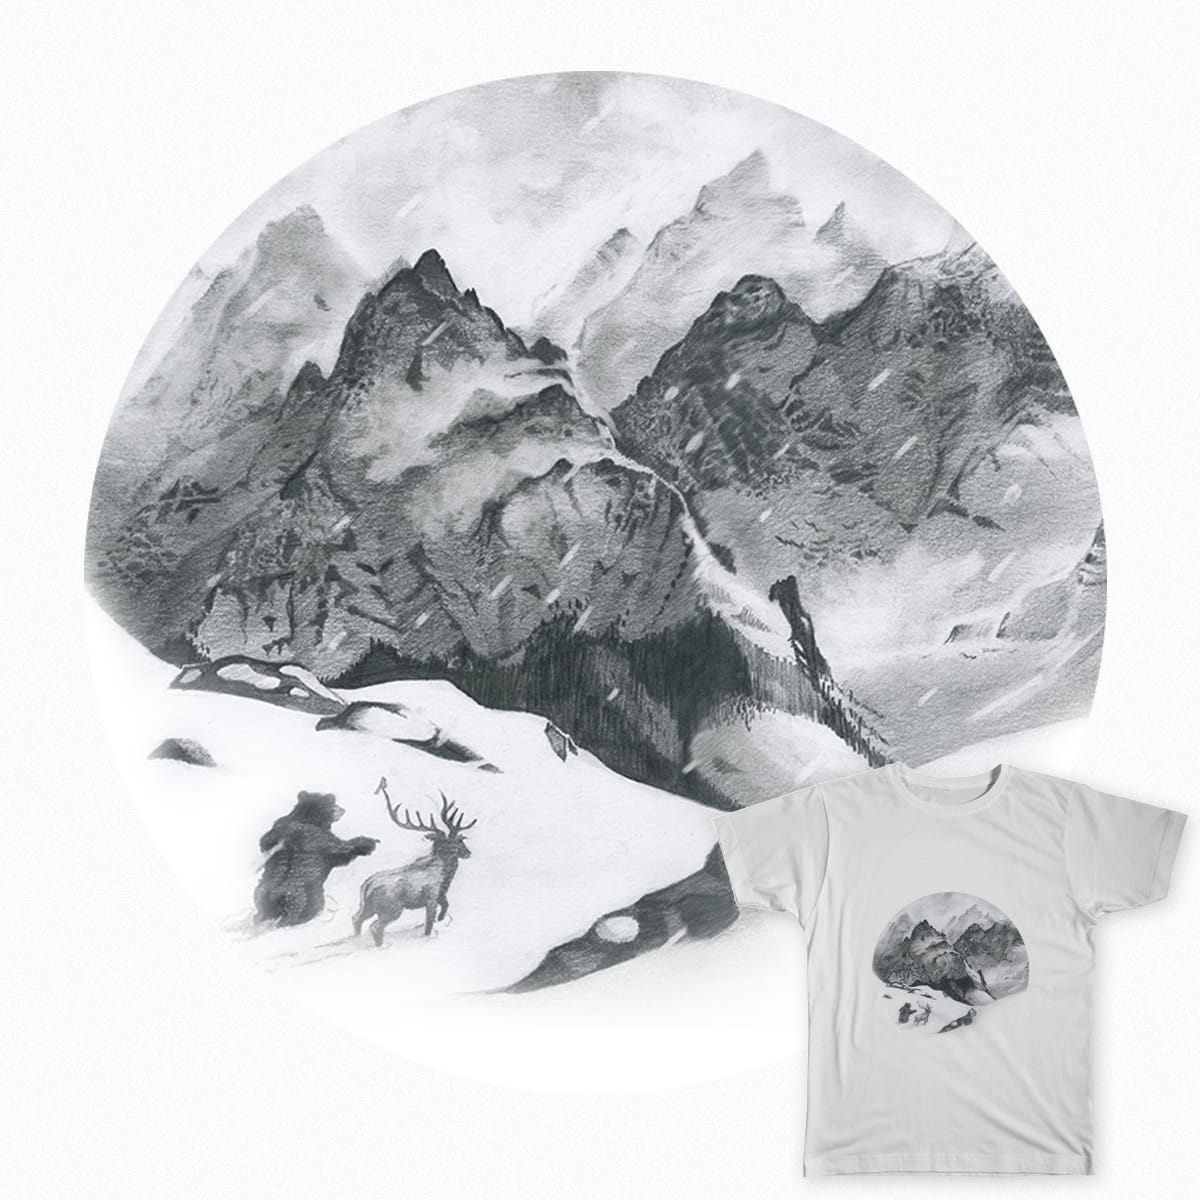 The Long Way Around by cranek on Threadless